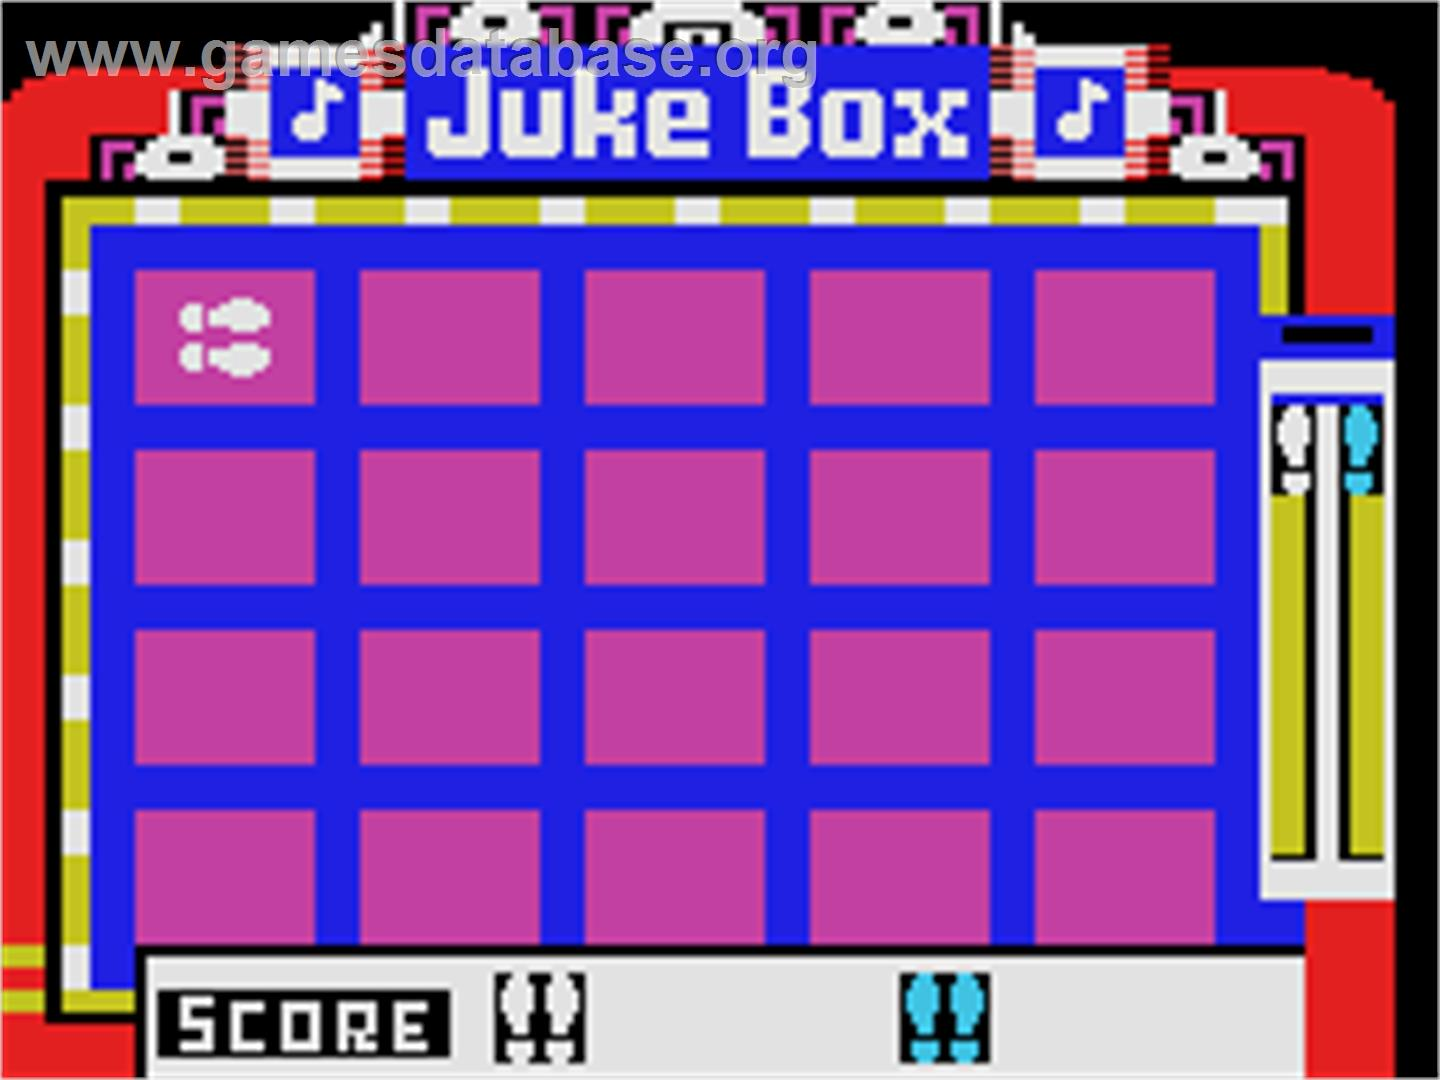 Juke Box - Coleco Vision - Artwork - In Game